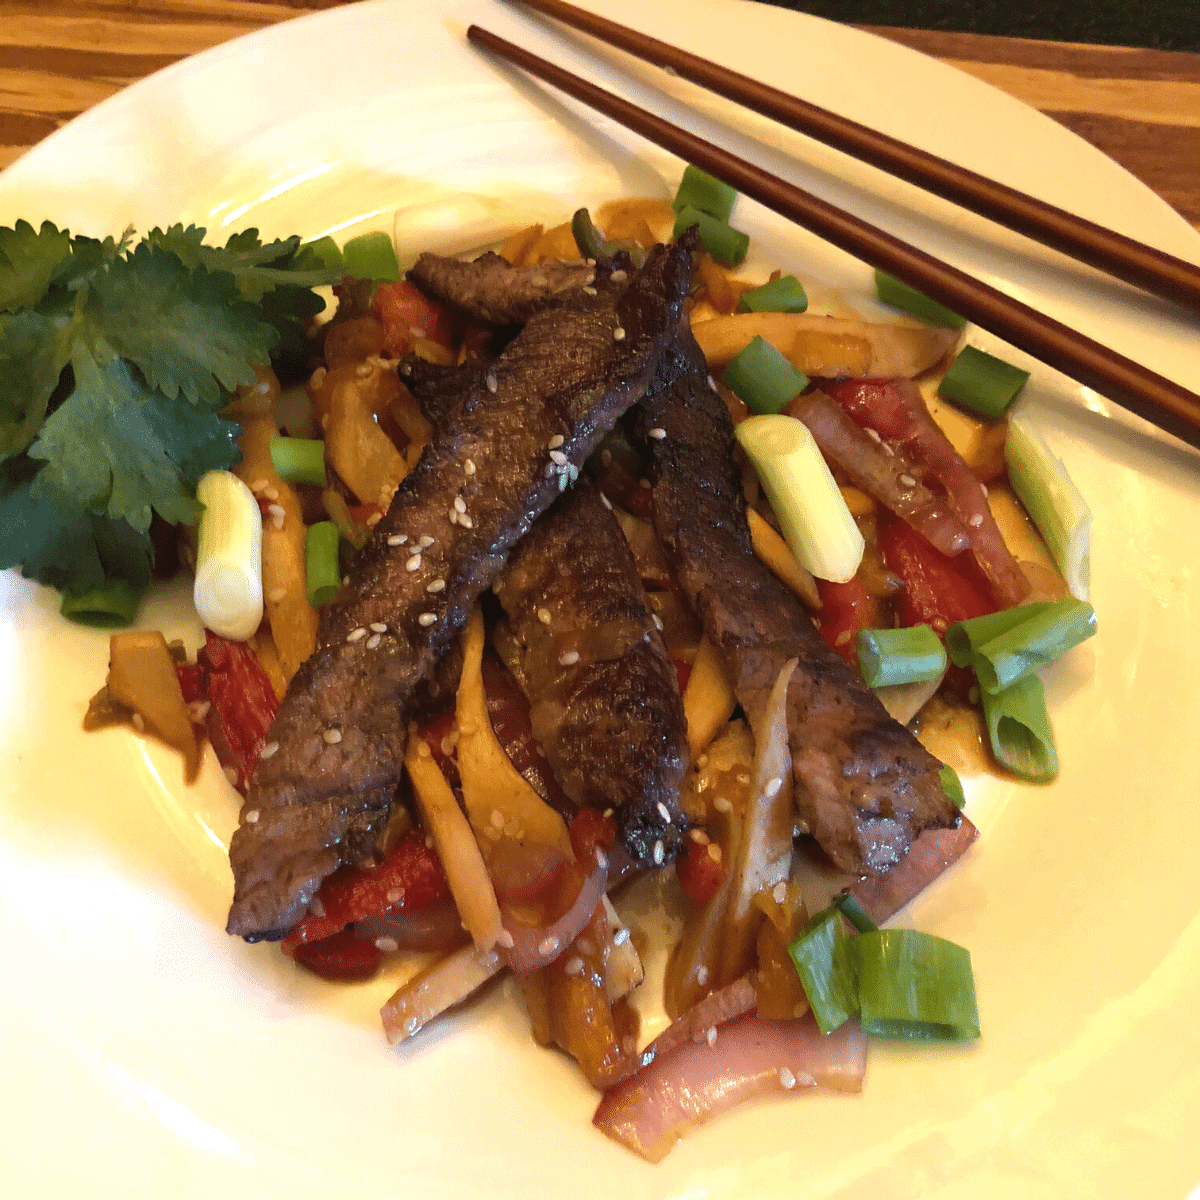 Keto Beef Stir Fry recipe gluten free low carb